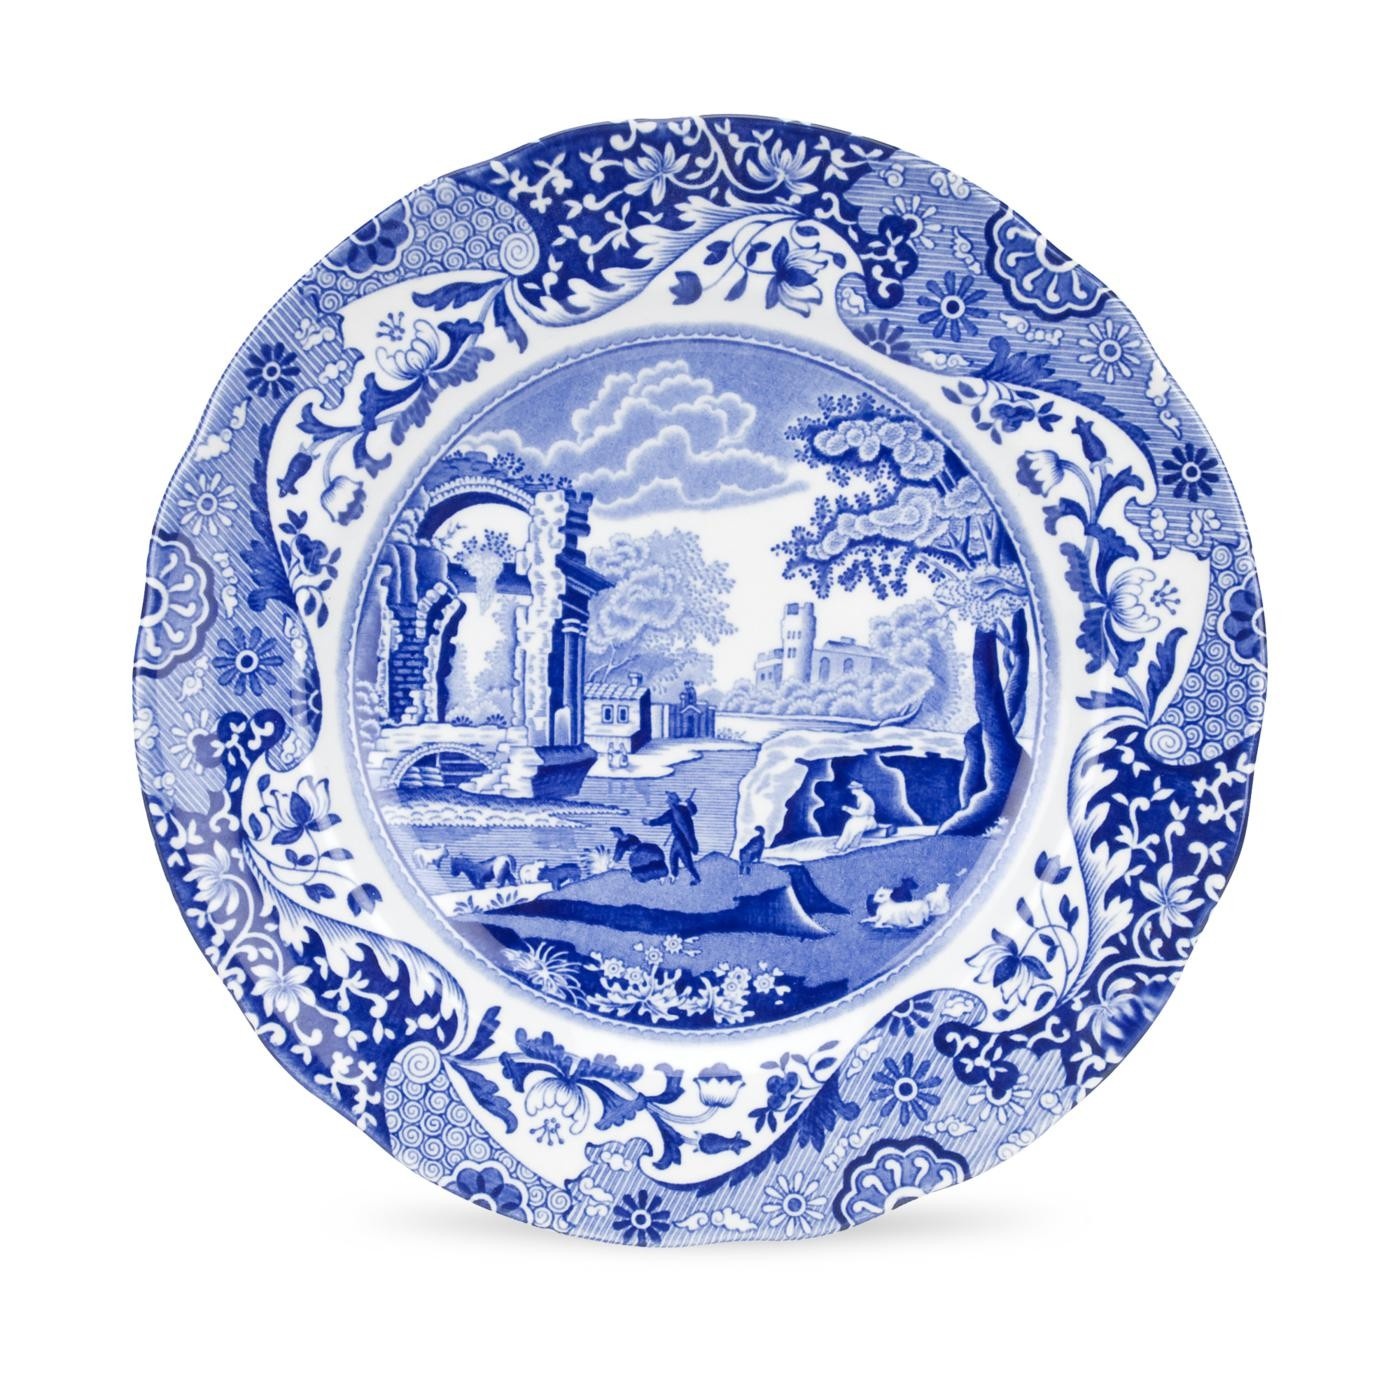 A good crockery criminologist could tell you that the possessor of this plate loves Jane Austen  sc 1 st  The Carpet Baggeru0027s Journal & On Southern China (Not Kowloon But Plates and Cups) | The Carpet ...